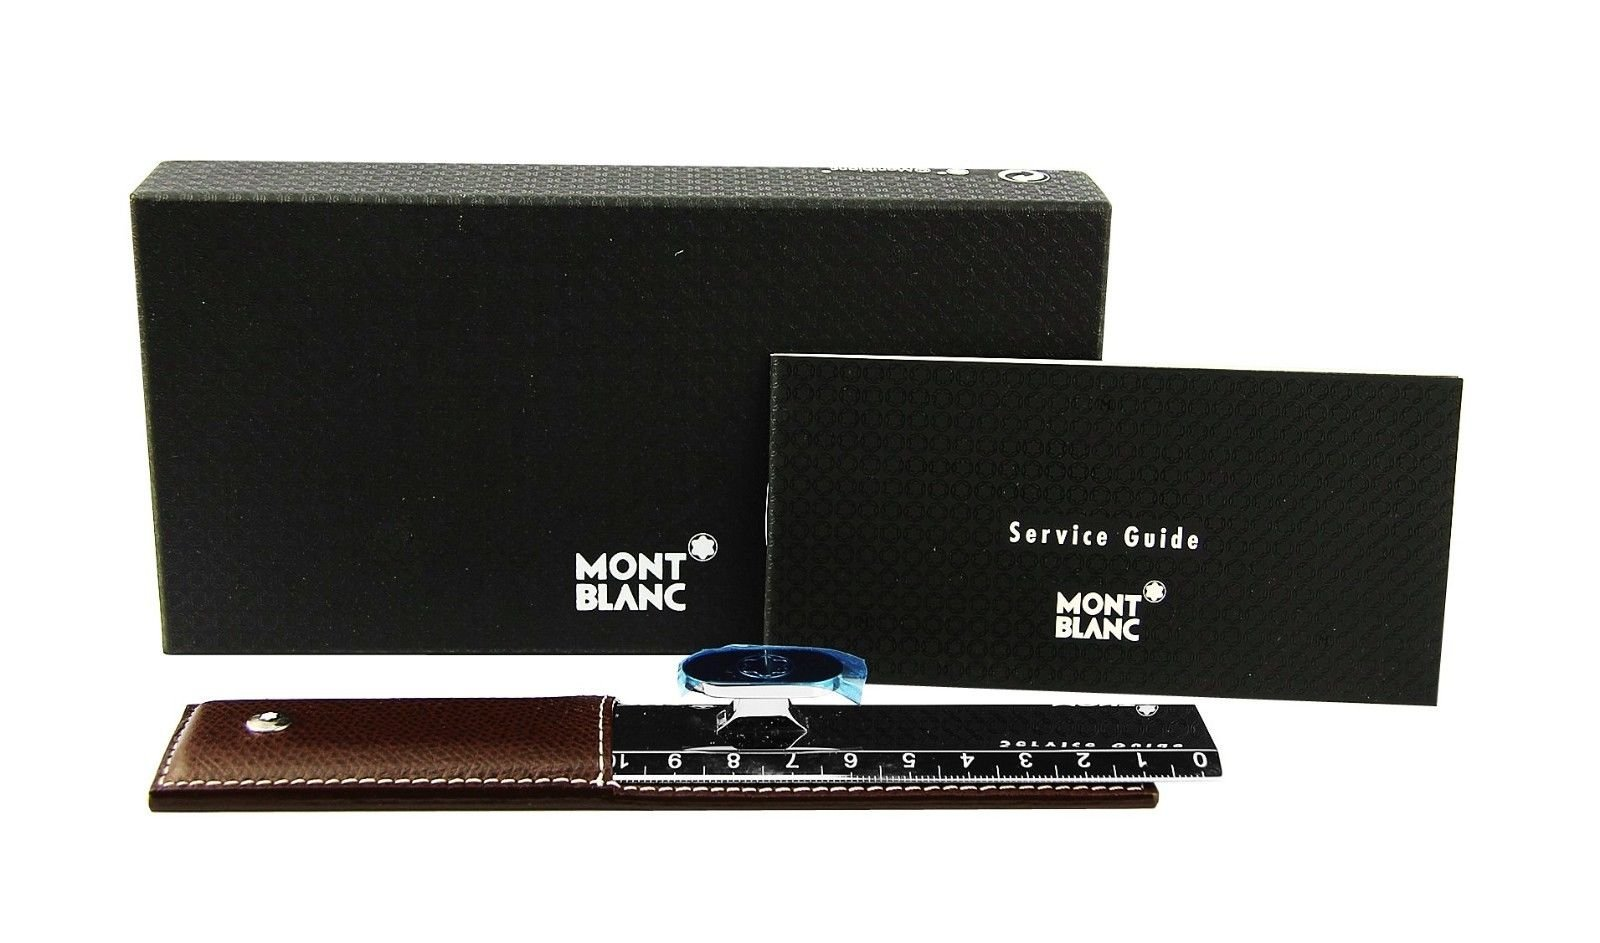 MONTBLANC RARE 7757 LIFESTYLE ACCESSORIES RULER BROWN LEATHER CASE. FRANCE